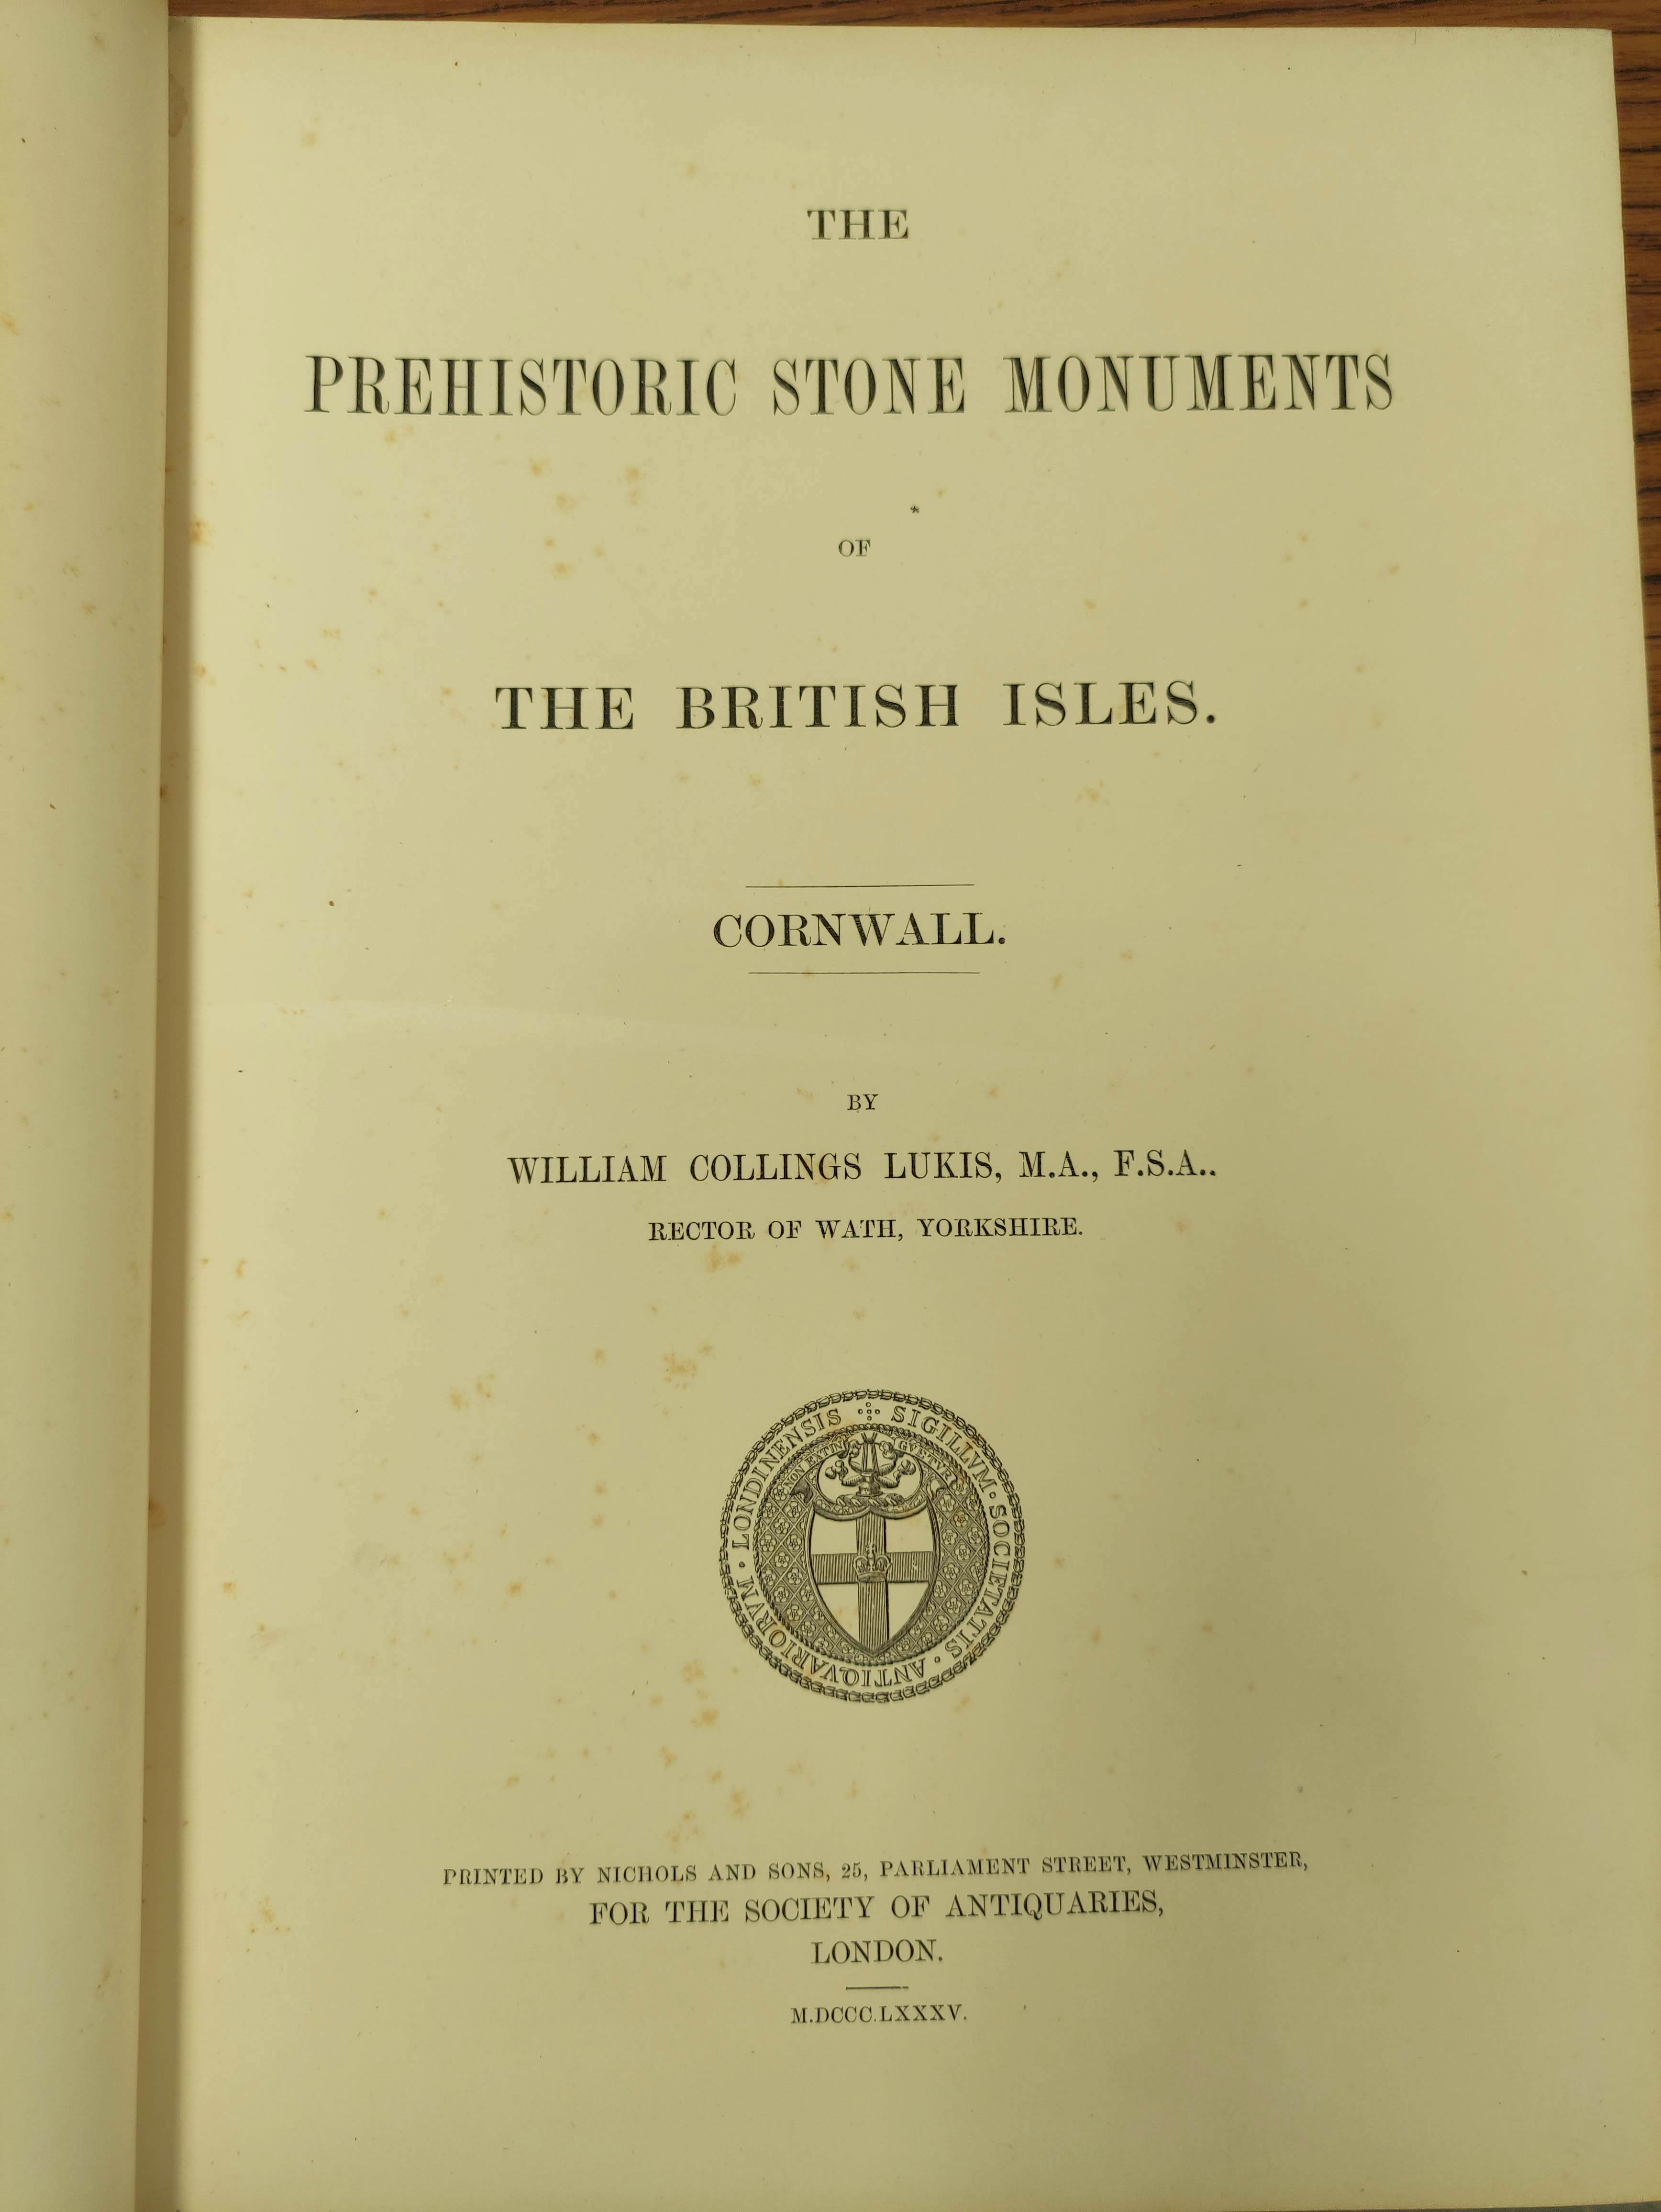 LUKIS WILLIAM C.The Prehistoric Stone Monuments of the British Isles, vol. re Cornwall. Col. - Image 3 of 7